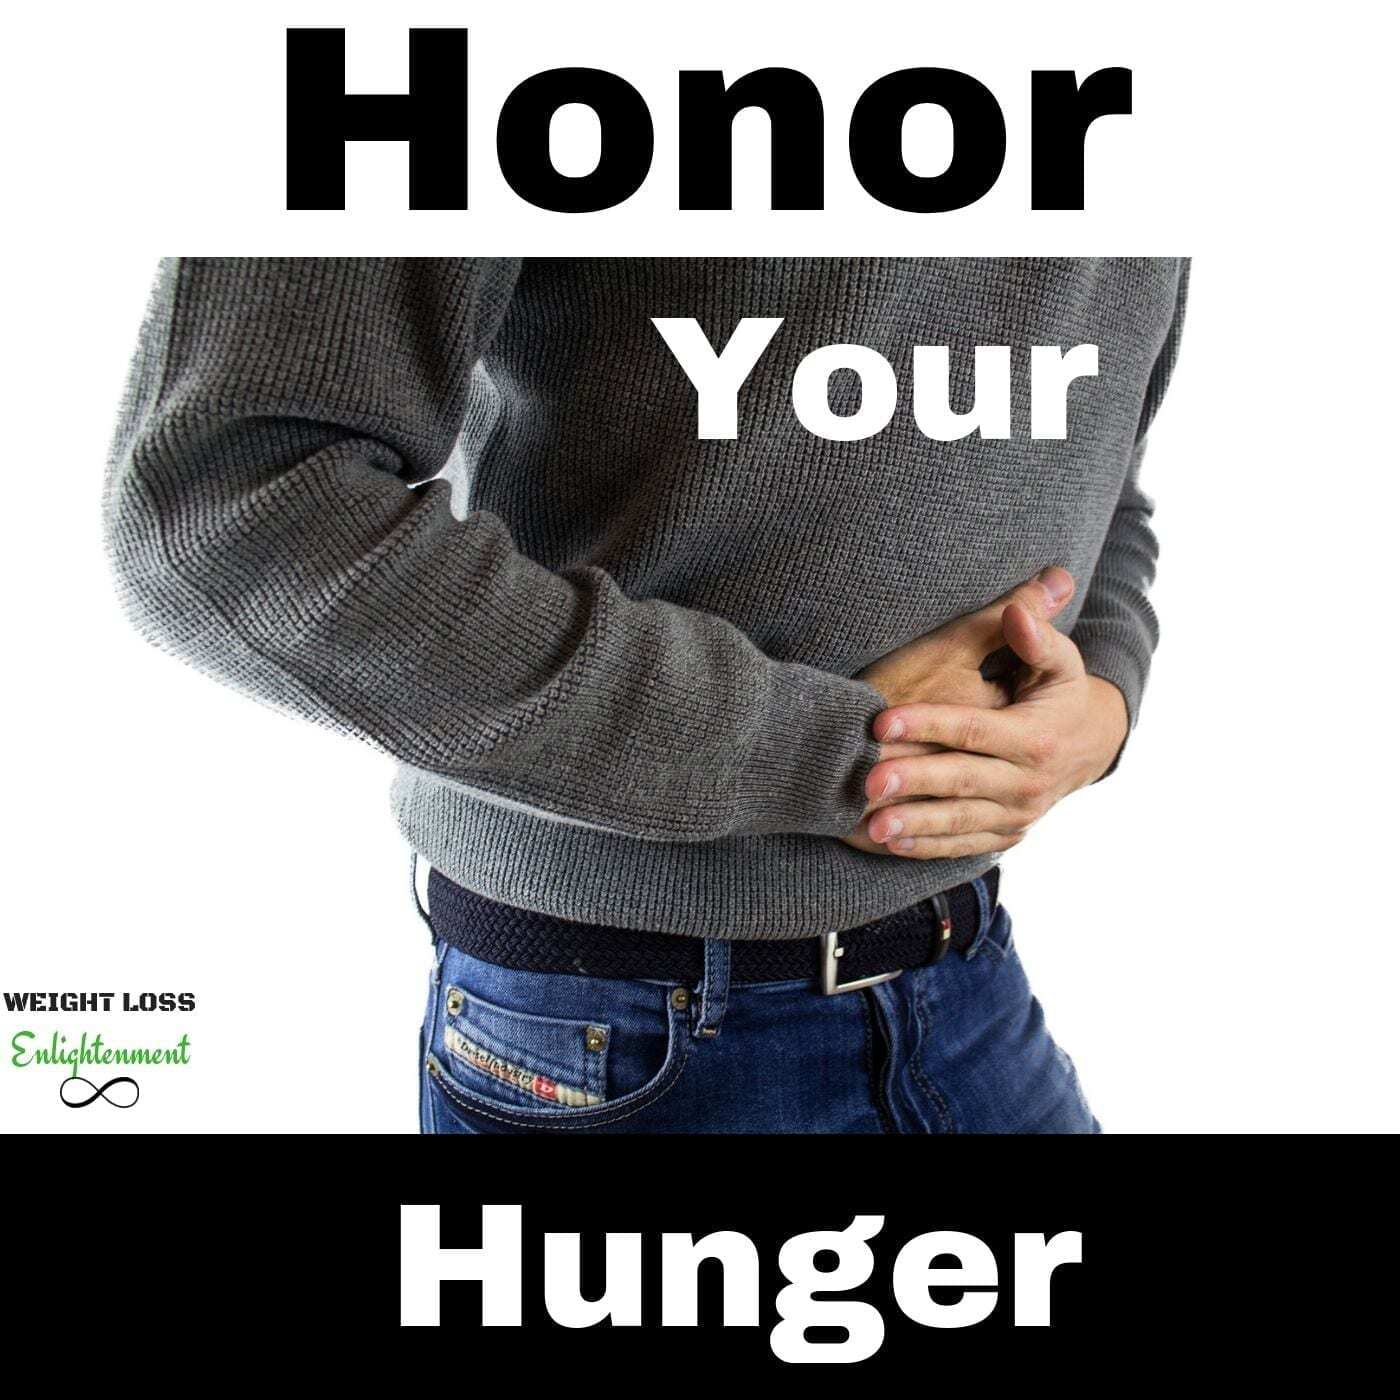 to cure food anxiety you must honor your hunger picture of man holding his belly in agony